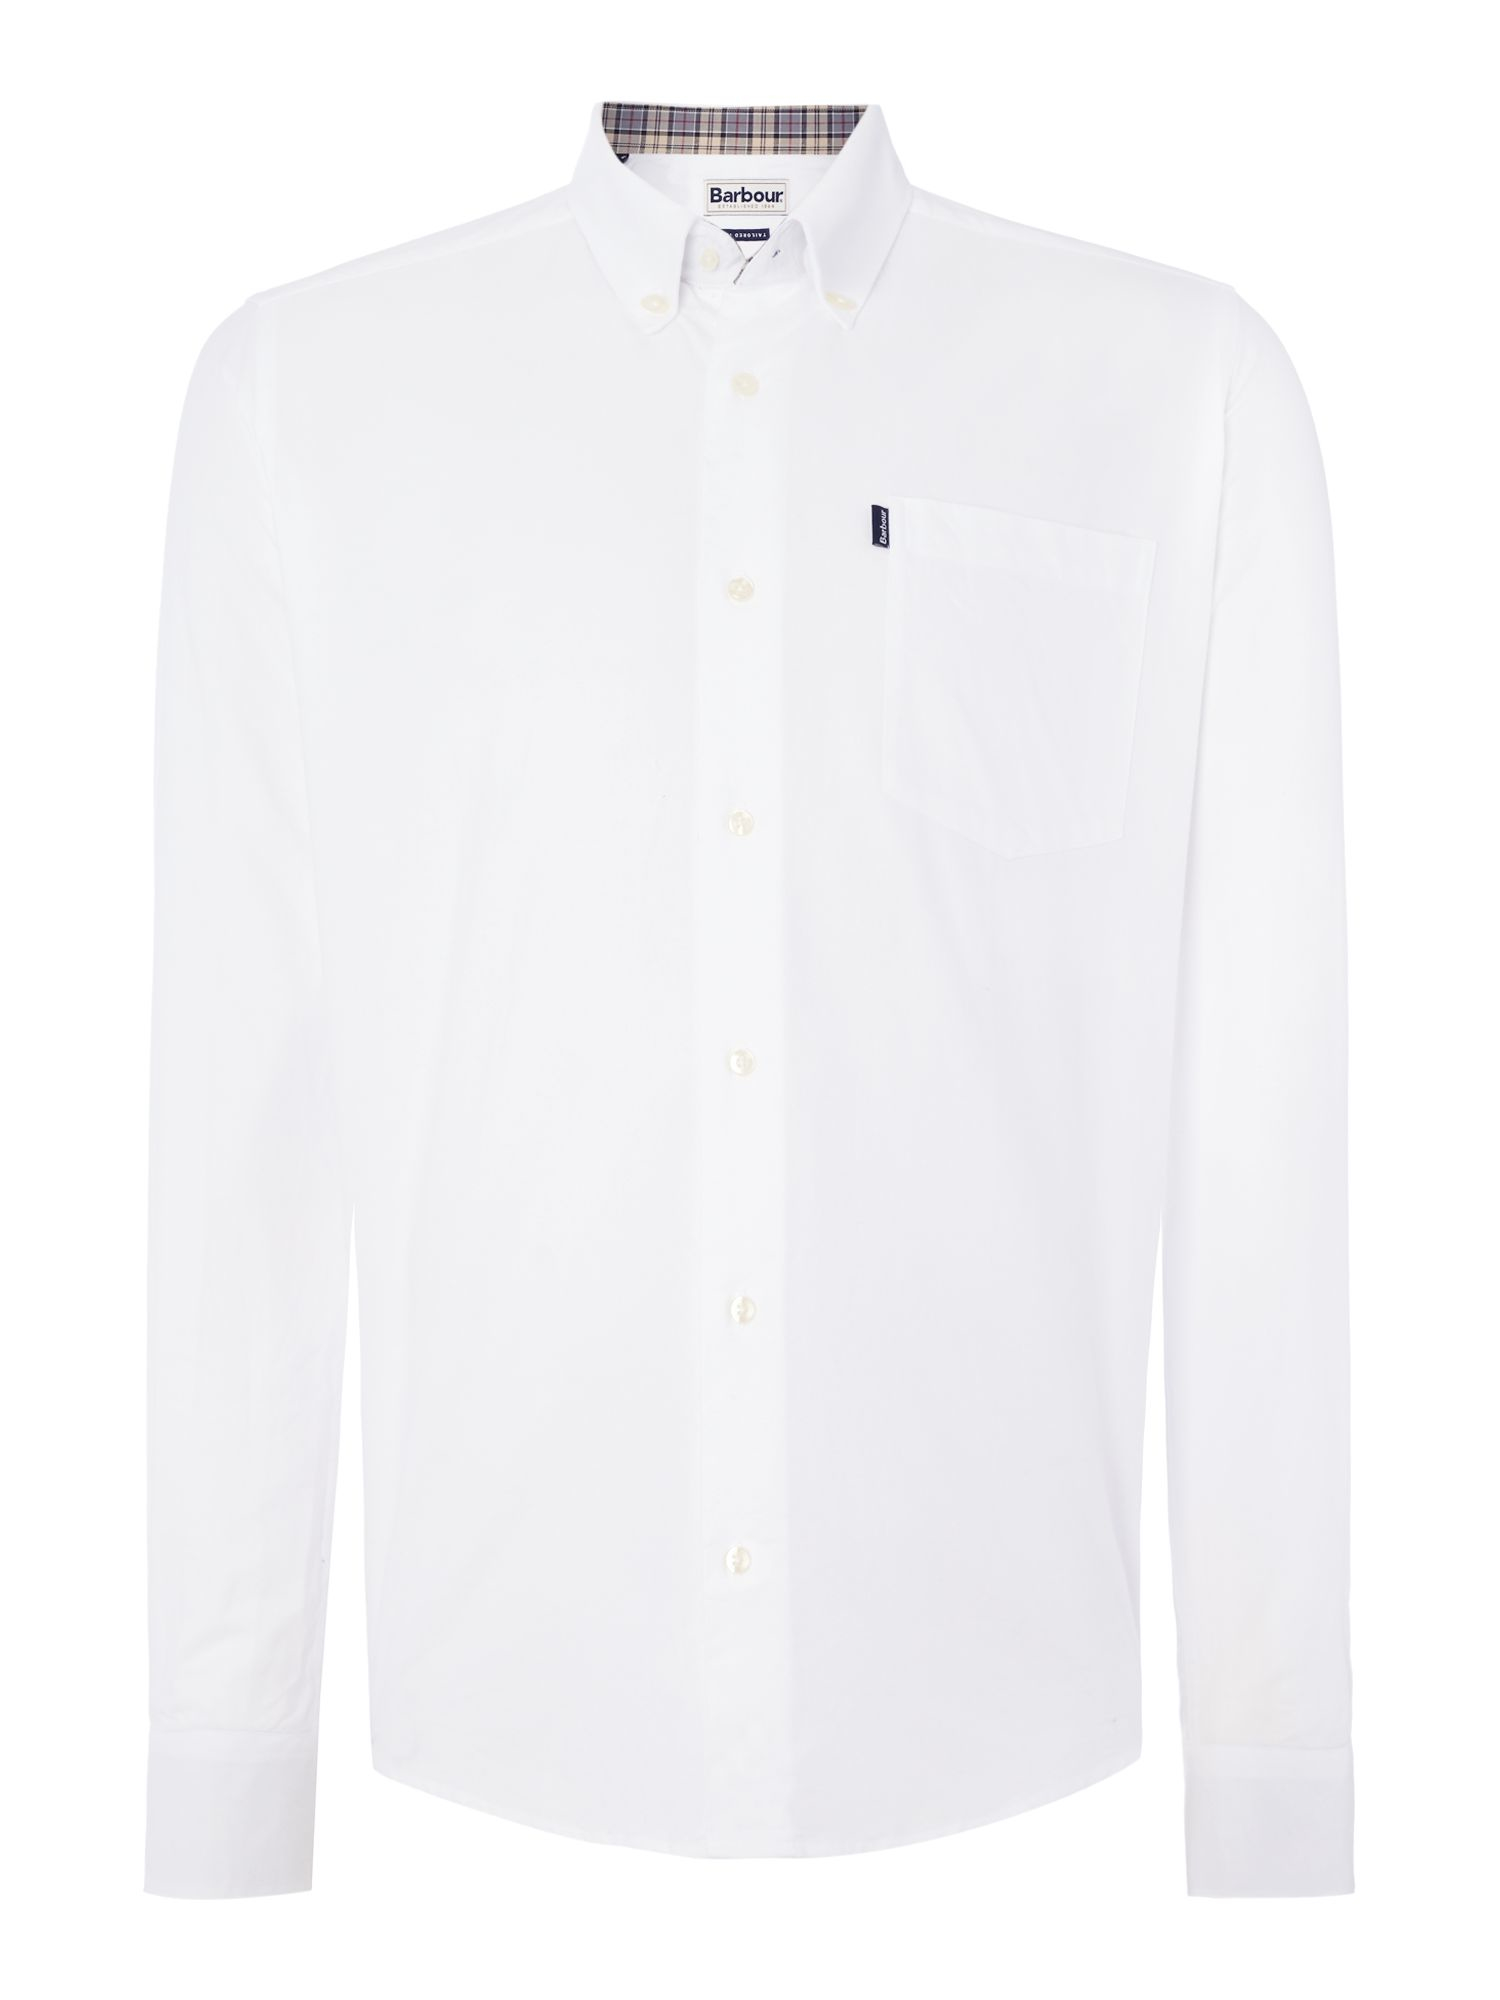 barbour the oxford long sleeve button down shirt in white ForOxford Long Sleeve Button Down Shirt